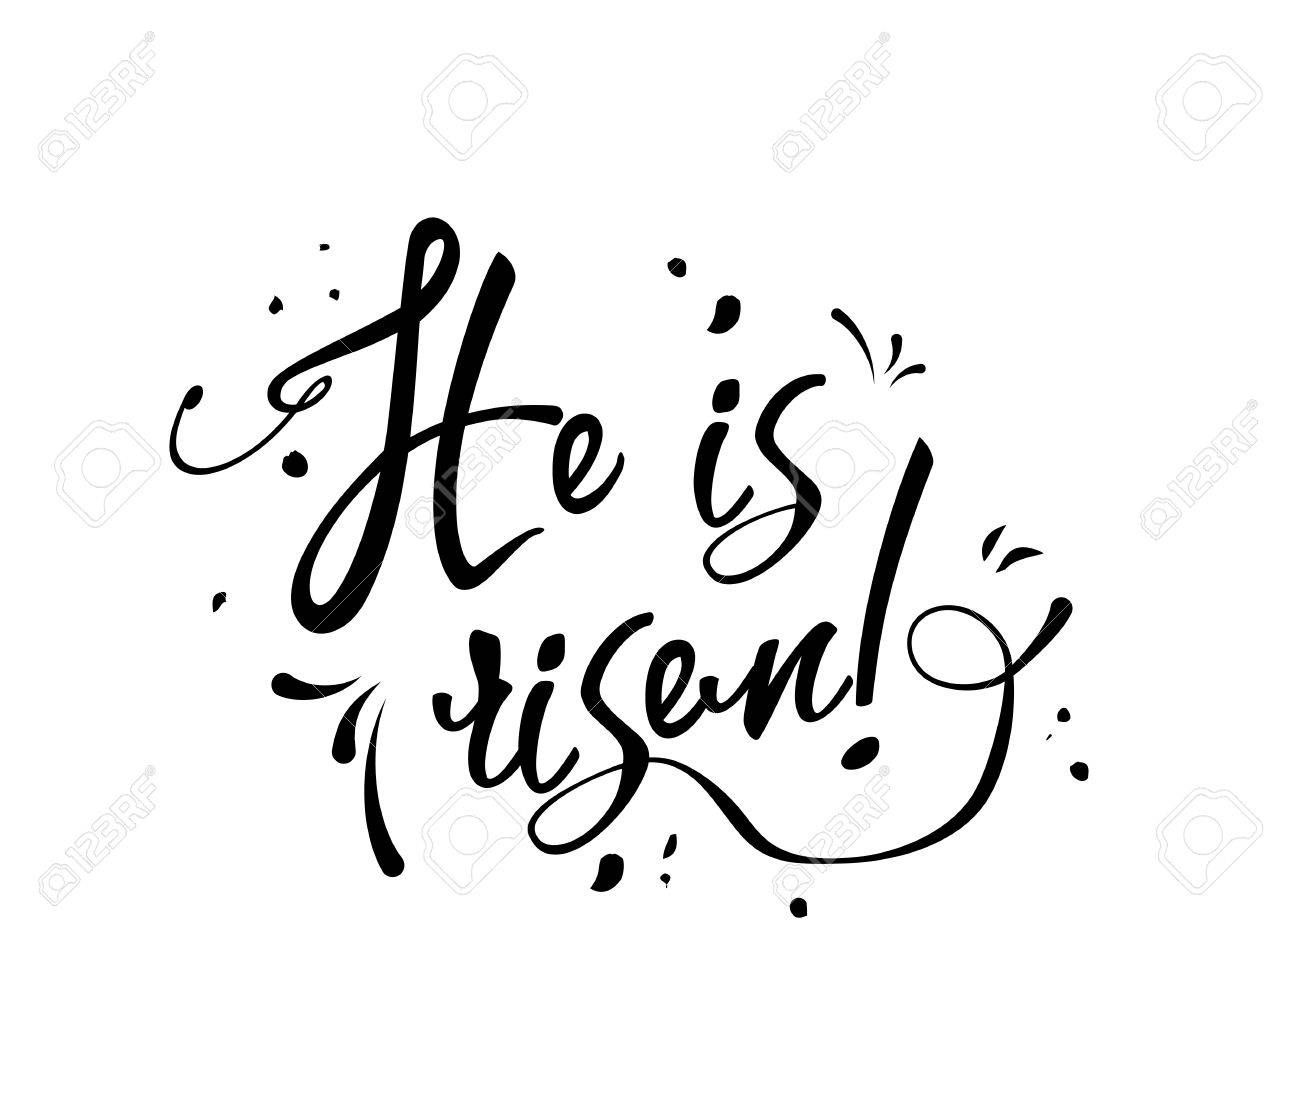 Superb Text He Is Risen Black On White Background, Illustration Stock Vector    74303261